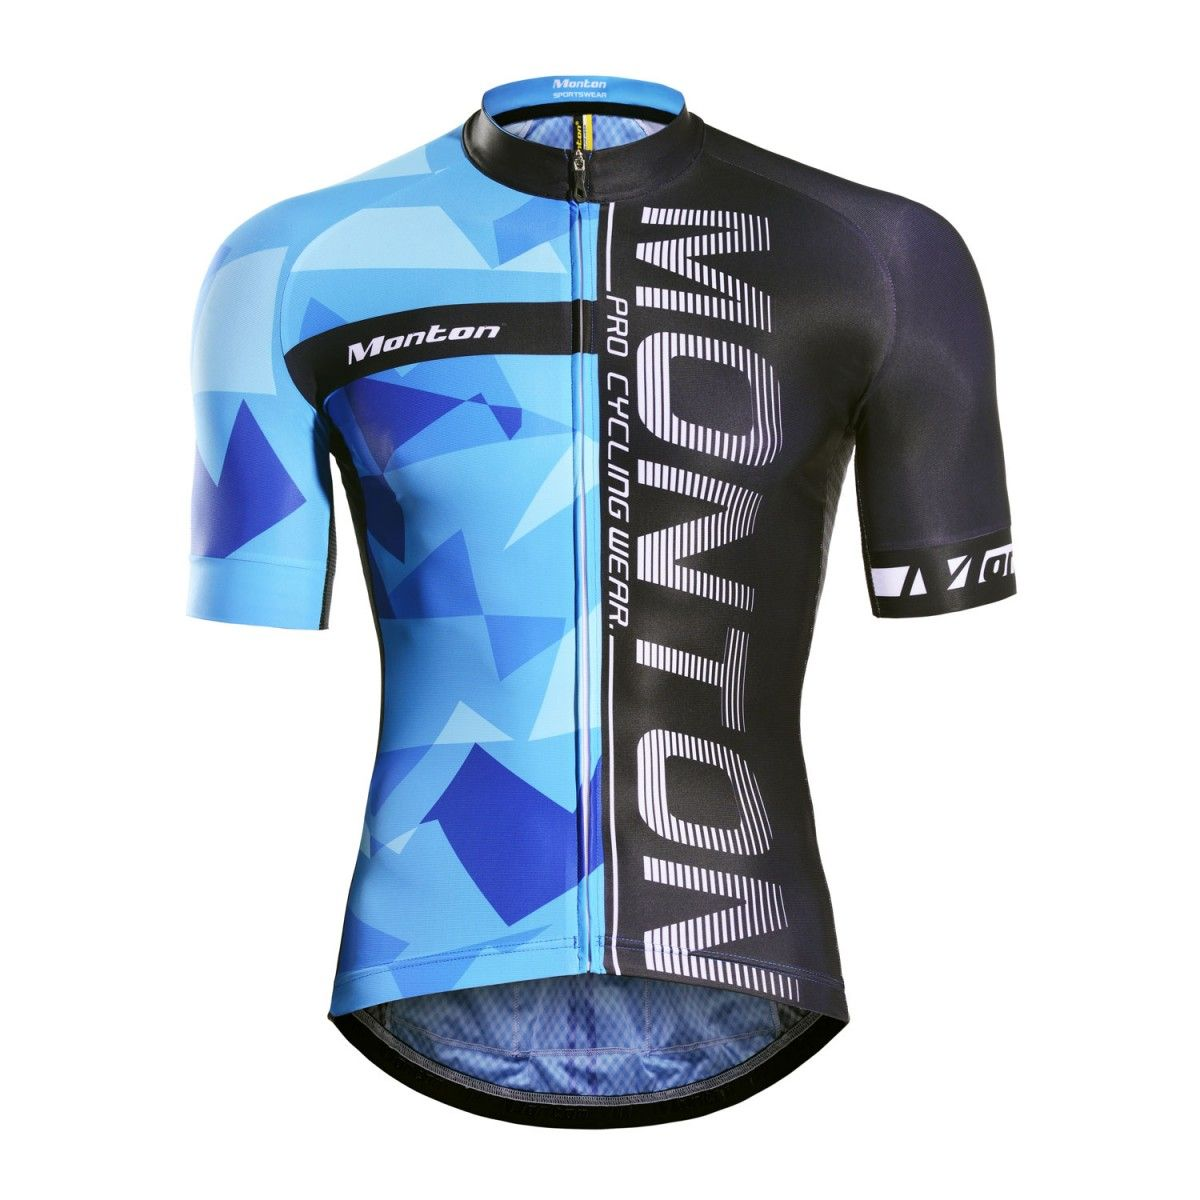 Cycling Wear Cycling Jersey 2016 Cycling Clothing Pinterest